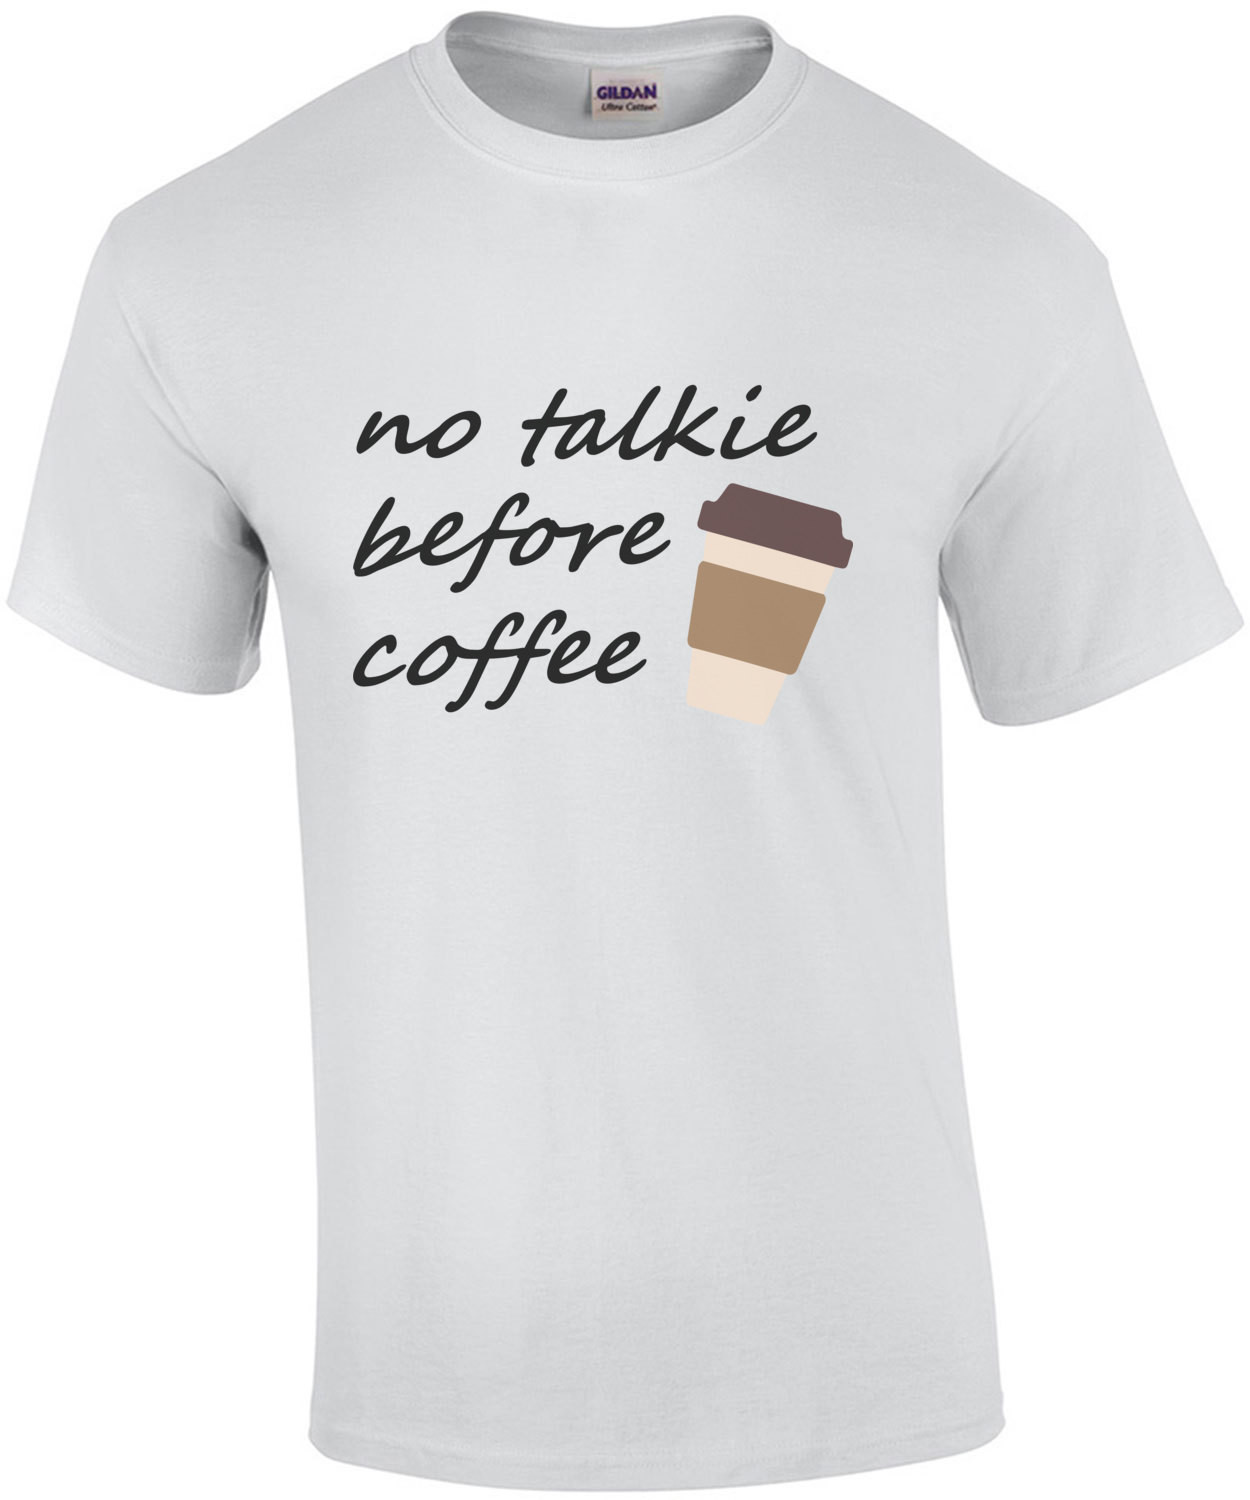 No talkie before coffee - funny coffee